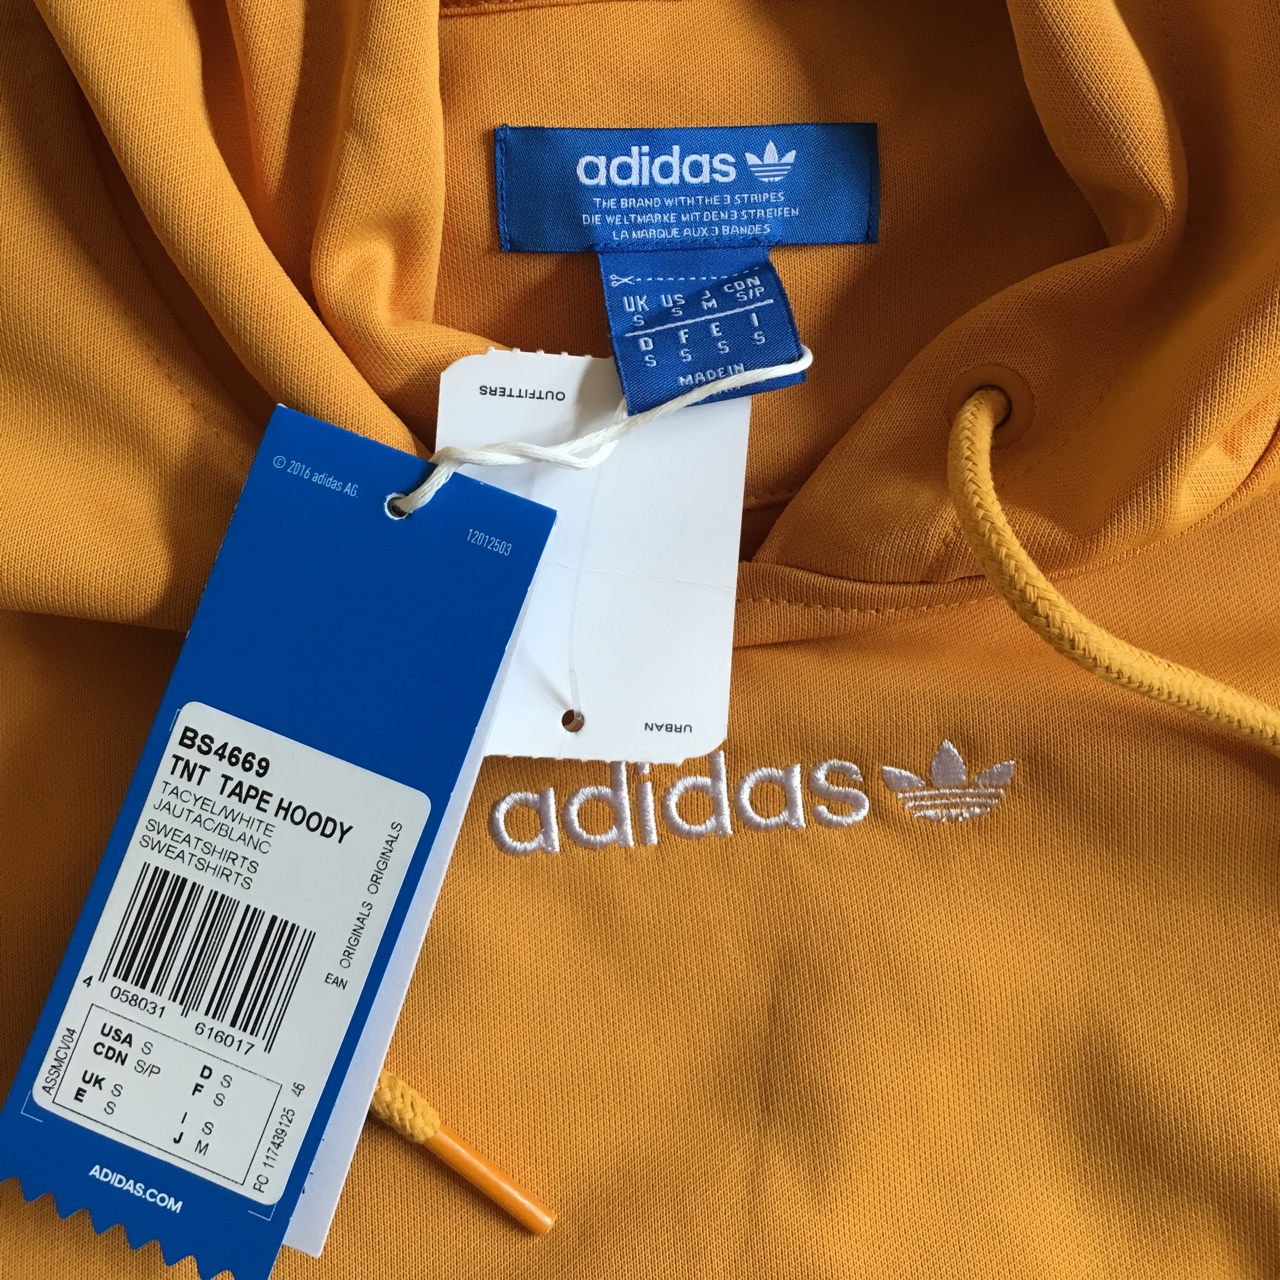 Adidas TNT tape hoodie colour yellow from urban Depop